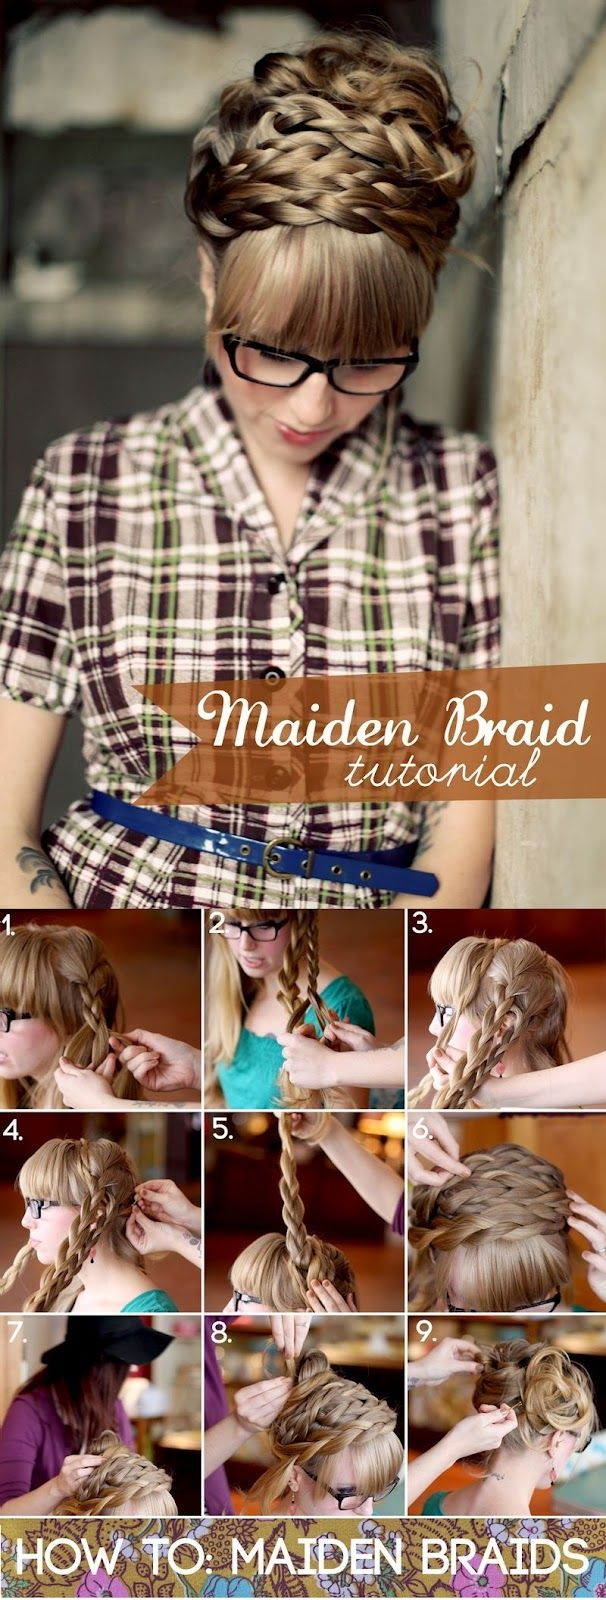 #Hairstyle : how to get the maiden braids hair style